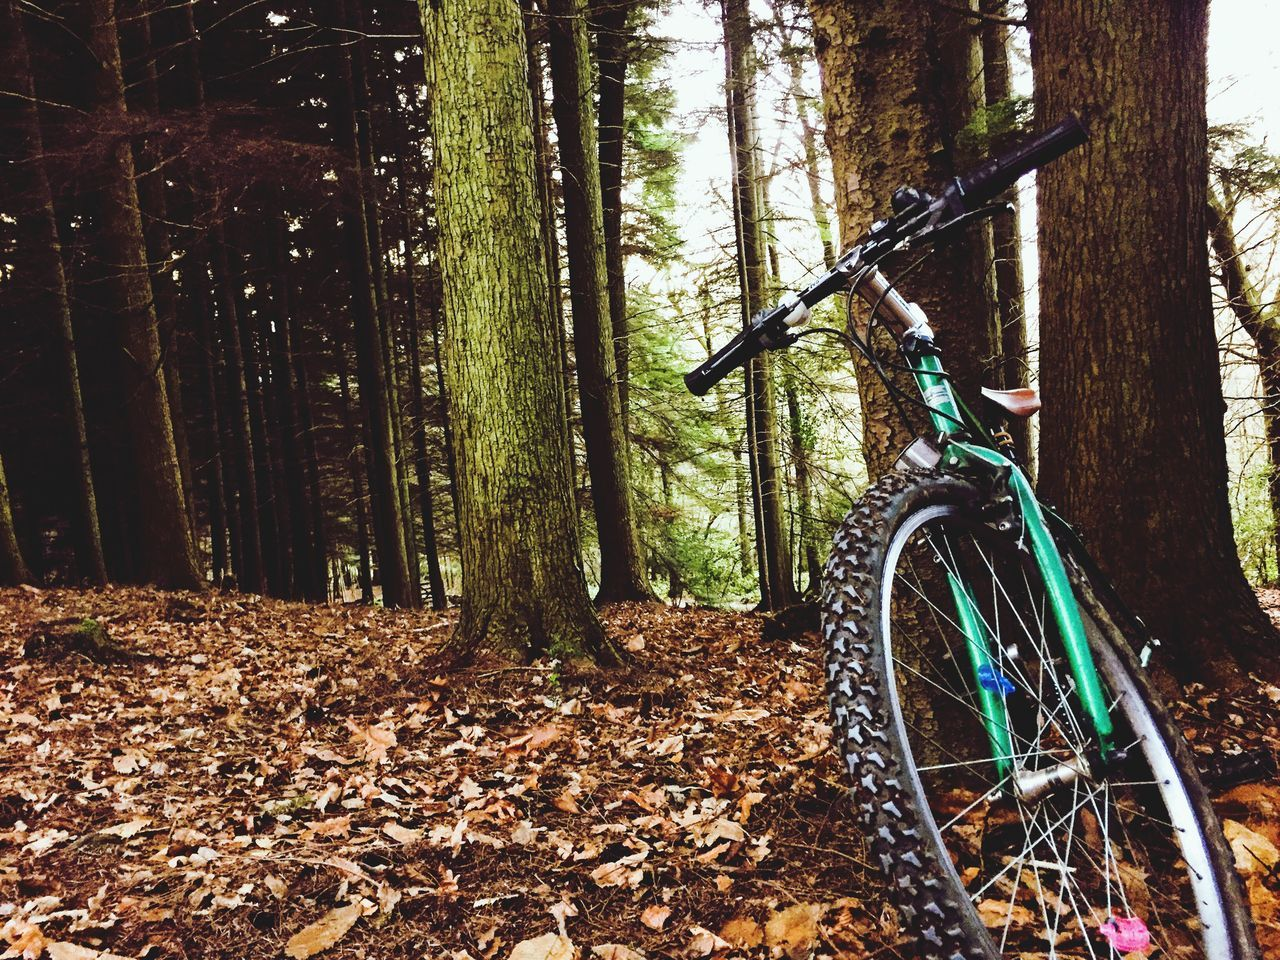 Traveling Home For The Holidays Bicycle Forest Nature High Contrast Clarity Mode Of Transport Bike Outdoors No People Calm Beautiful Light Winter Morning